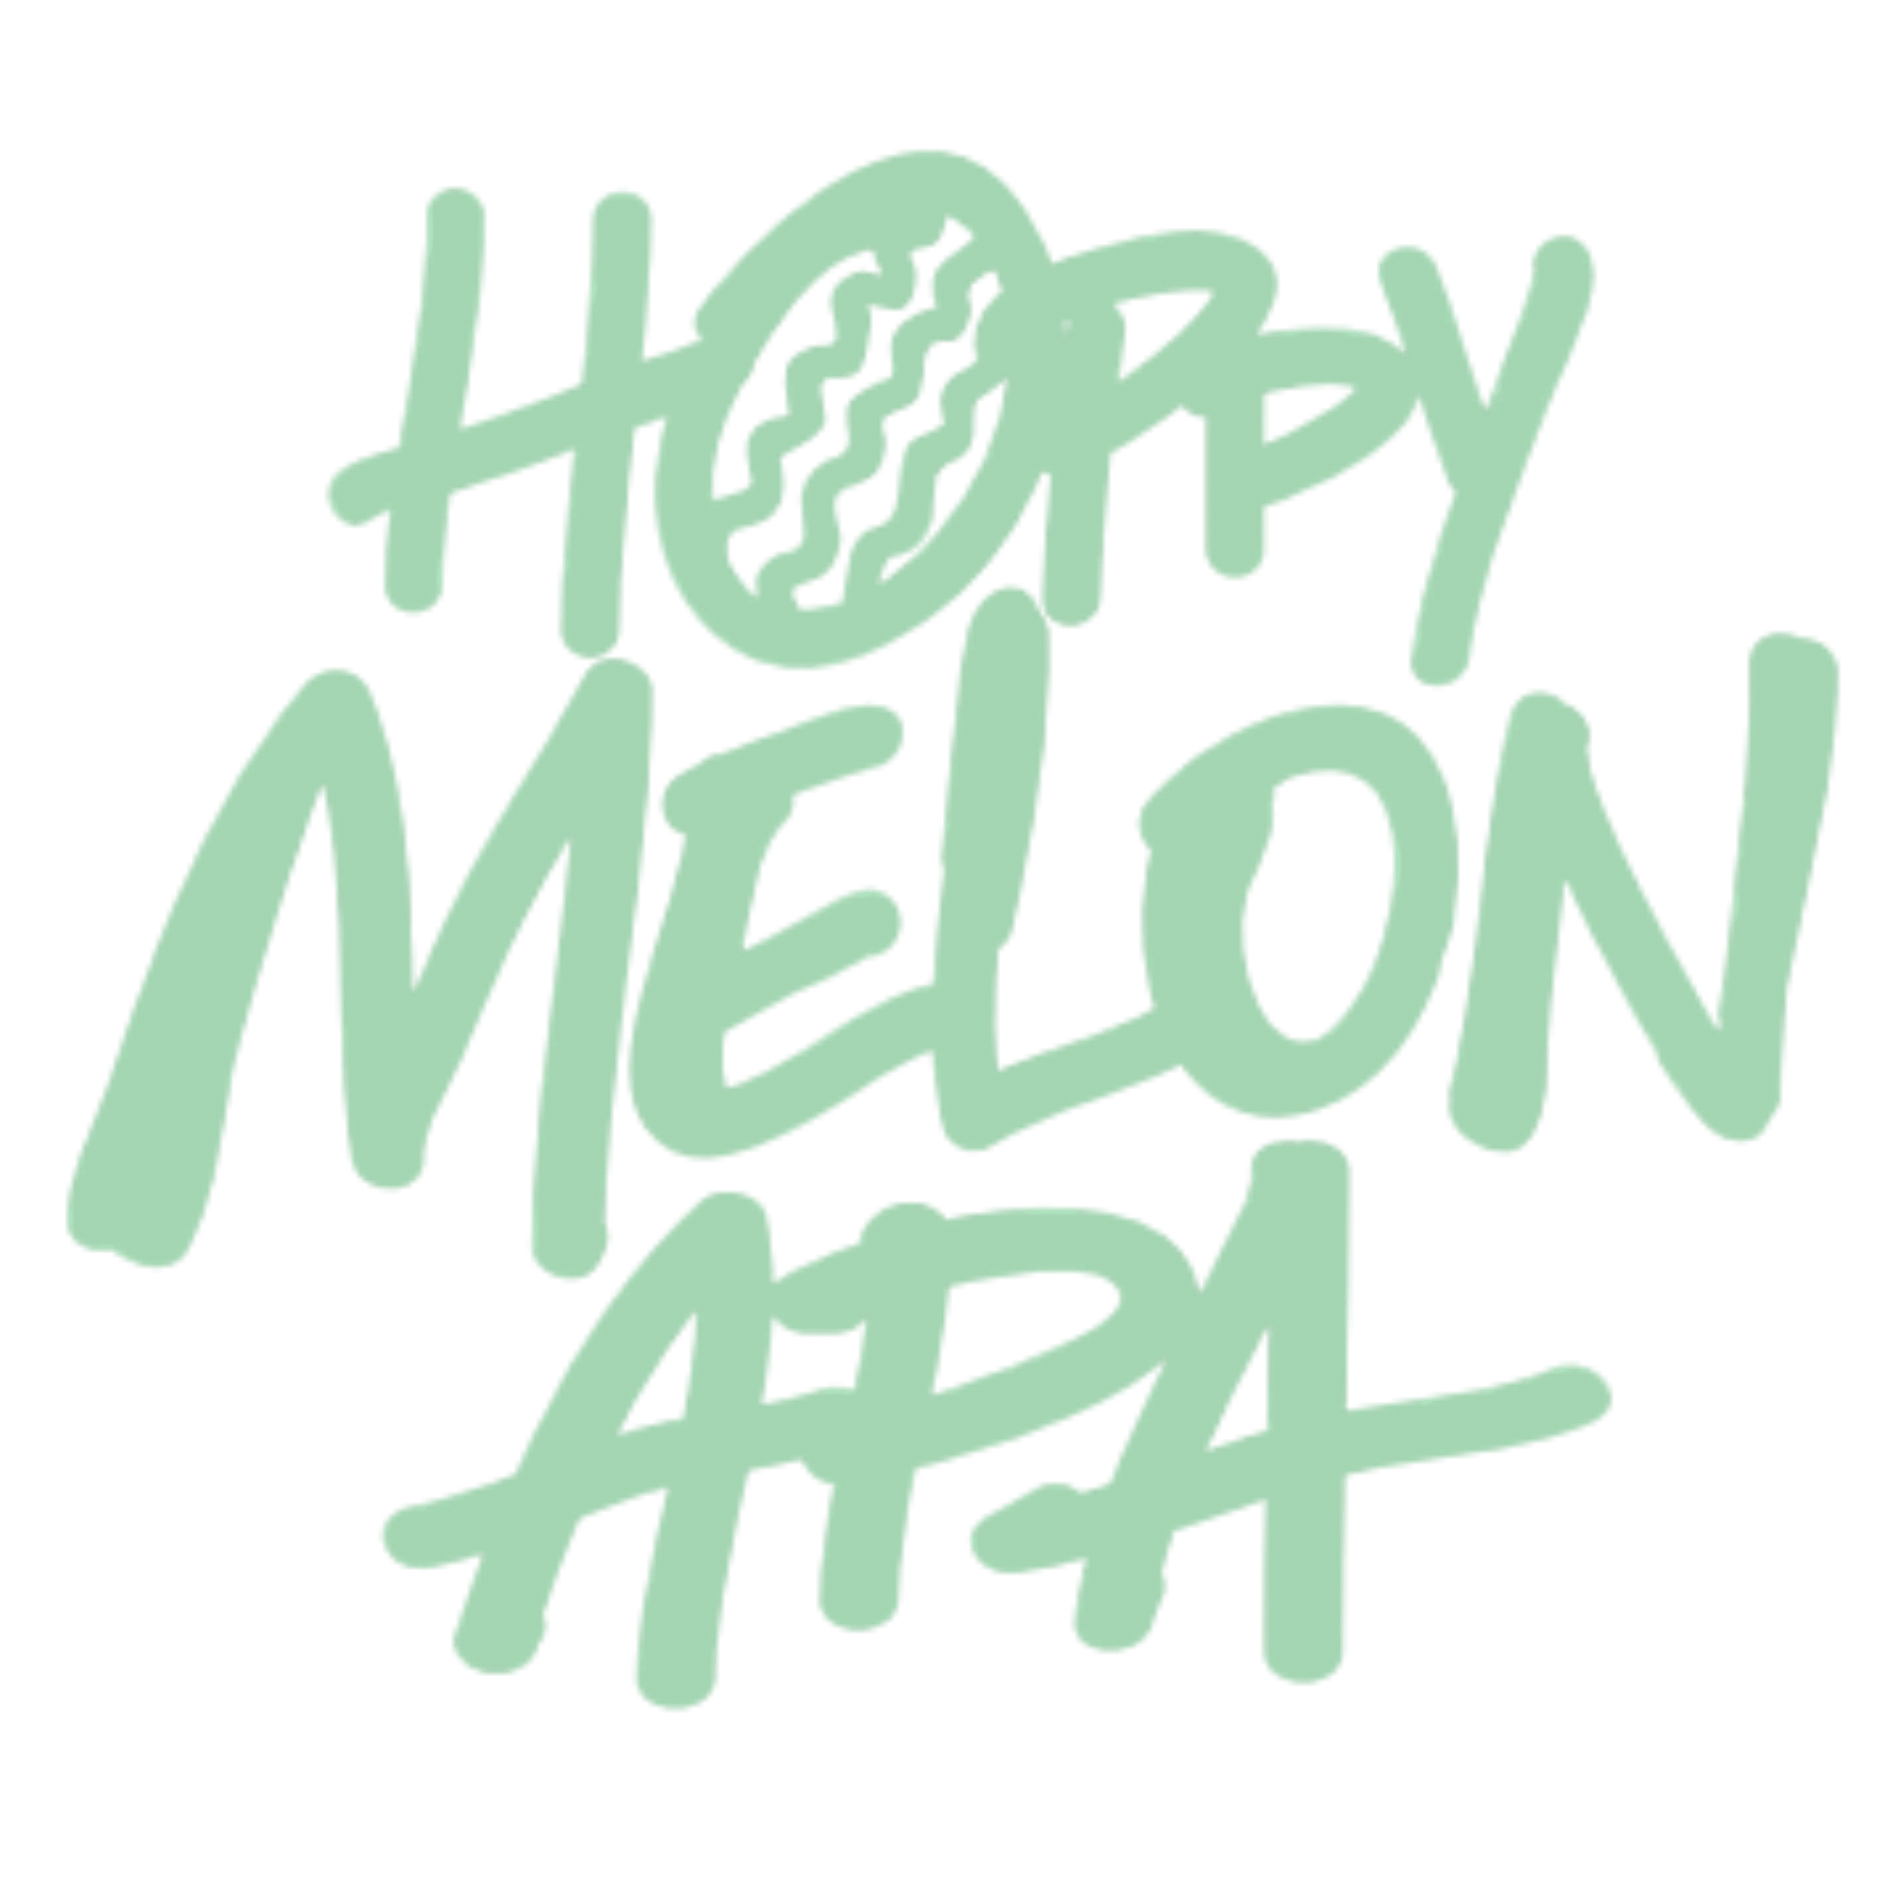 Hop For fun - Hoppy Melon Apa